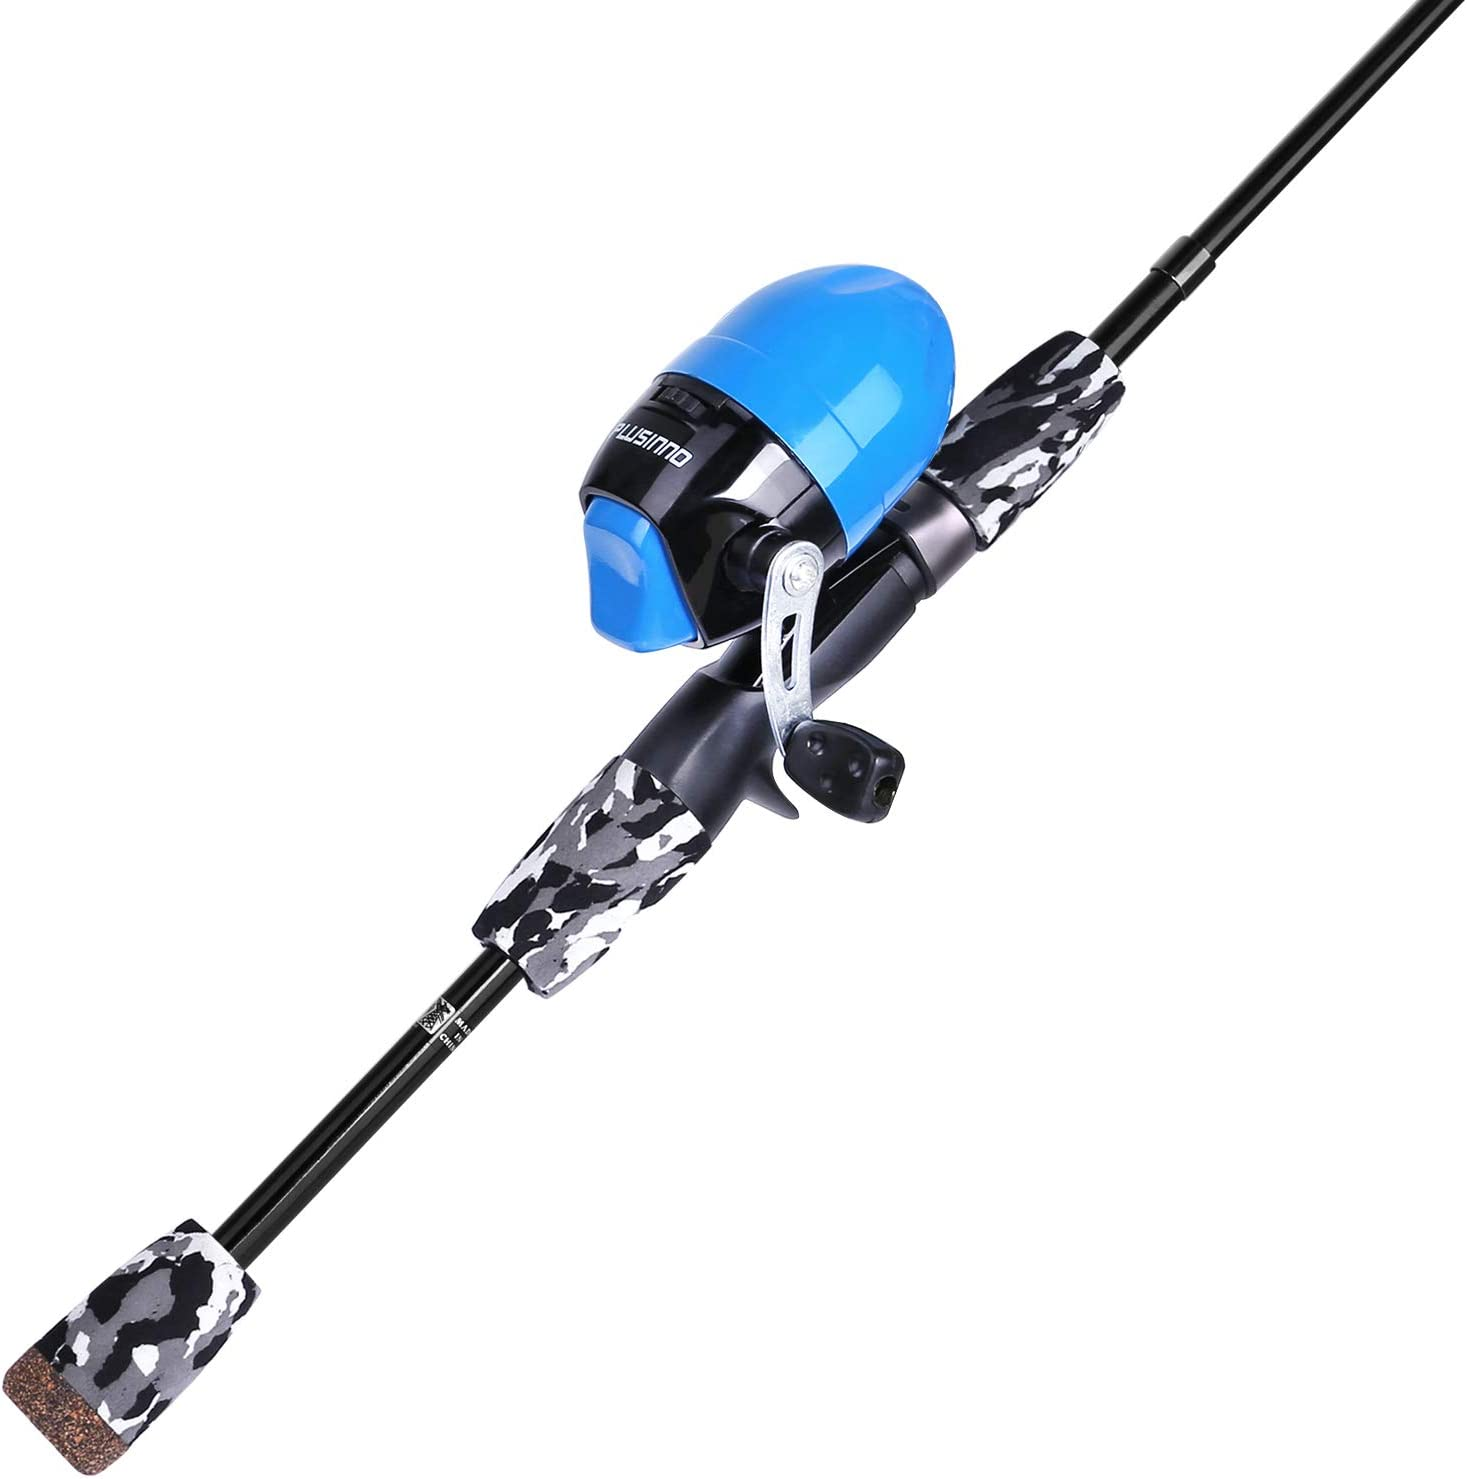 Amazon.com : PLUSINNO Kids Fishing Pole with Spincast Reel Telescopic Fishing Rod Combo Full Kits for Boys, Girls, and Adults : Sports & Outdoors